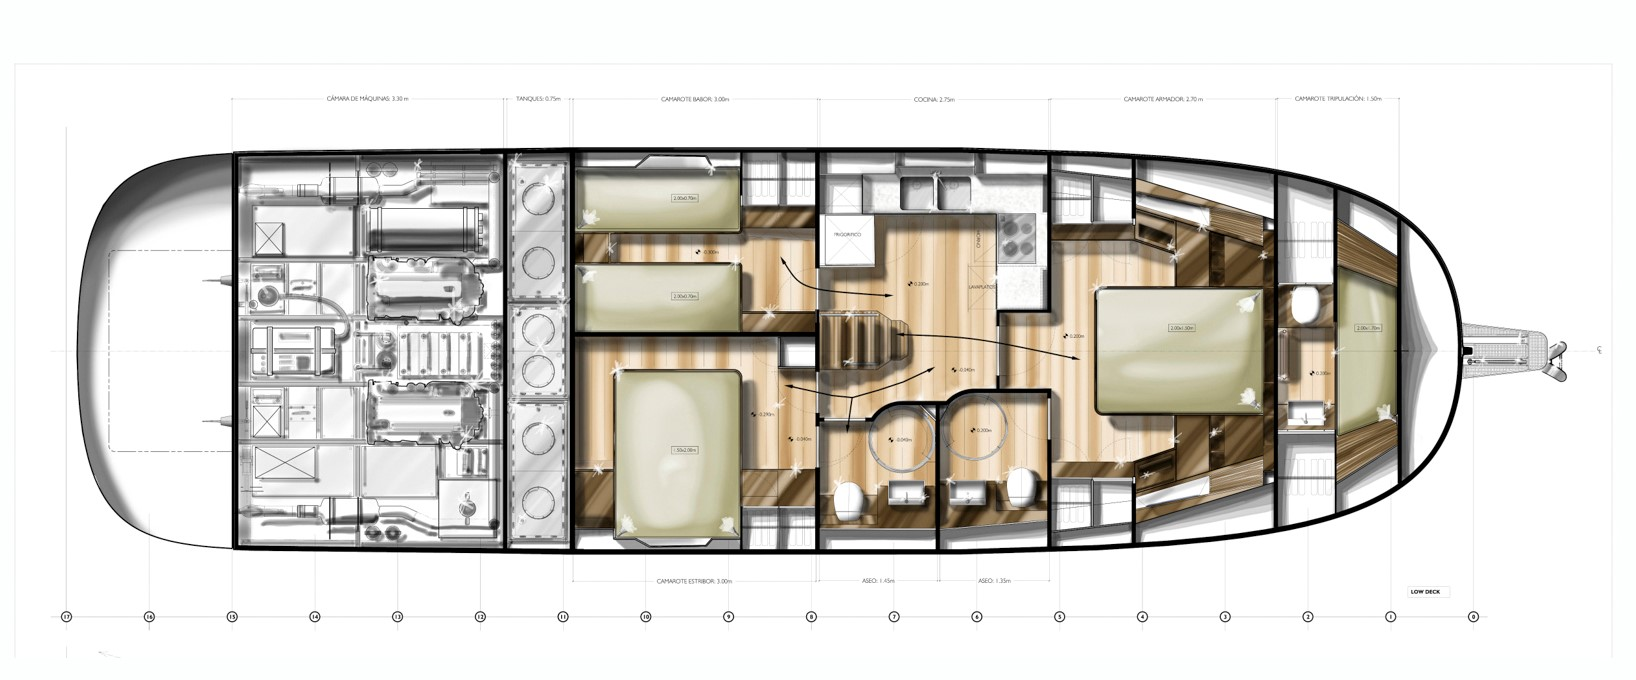 minorca islander 54 hardtop lower deck layout